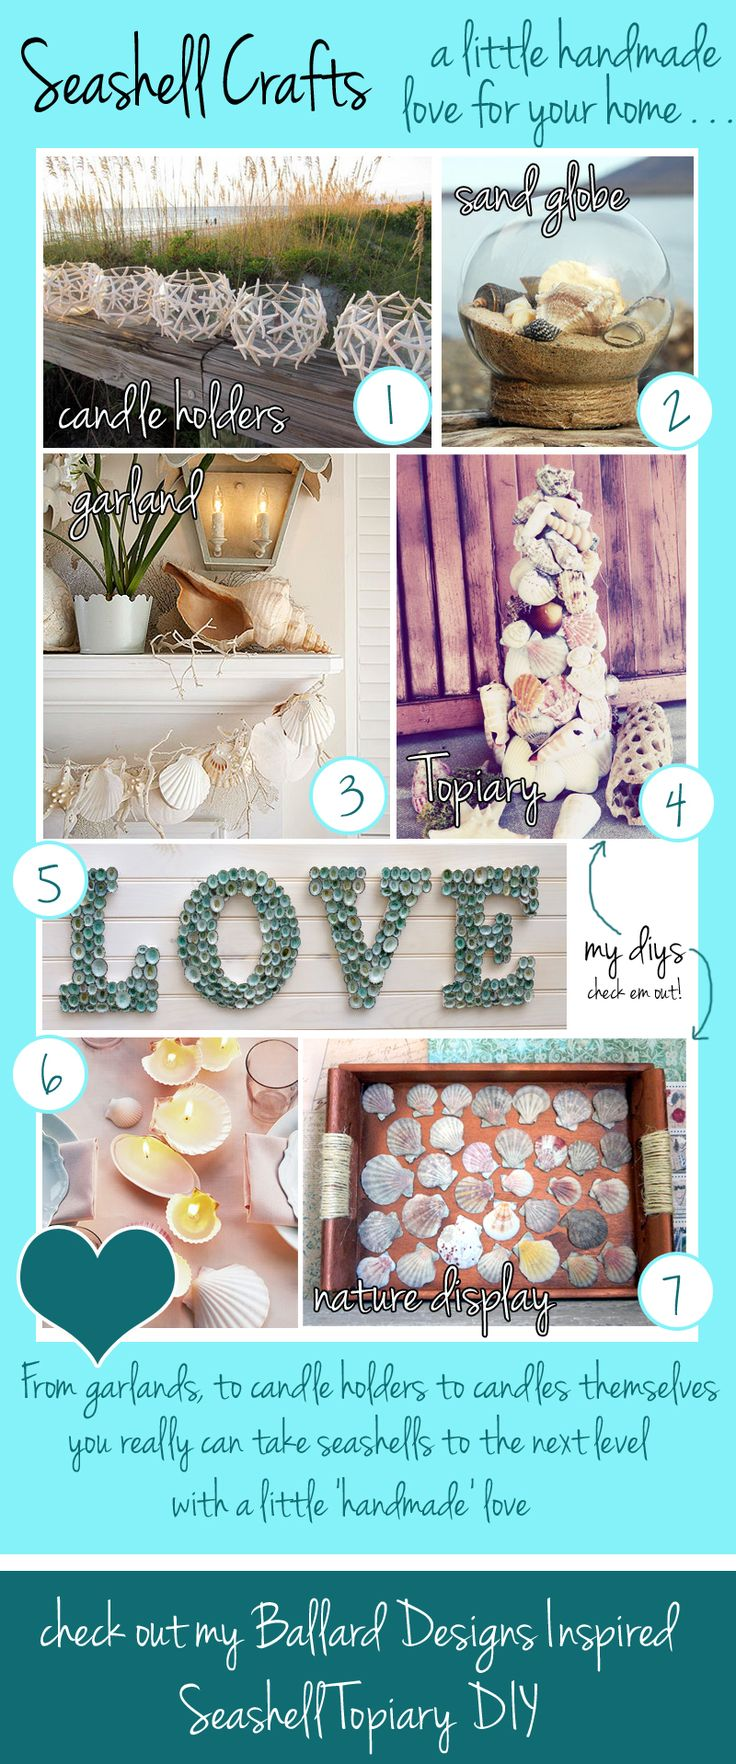 237 best images about sea shell art on pinterest for Arts and crafts with seashells